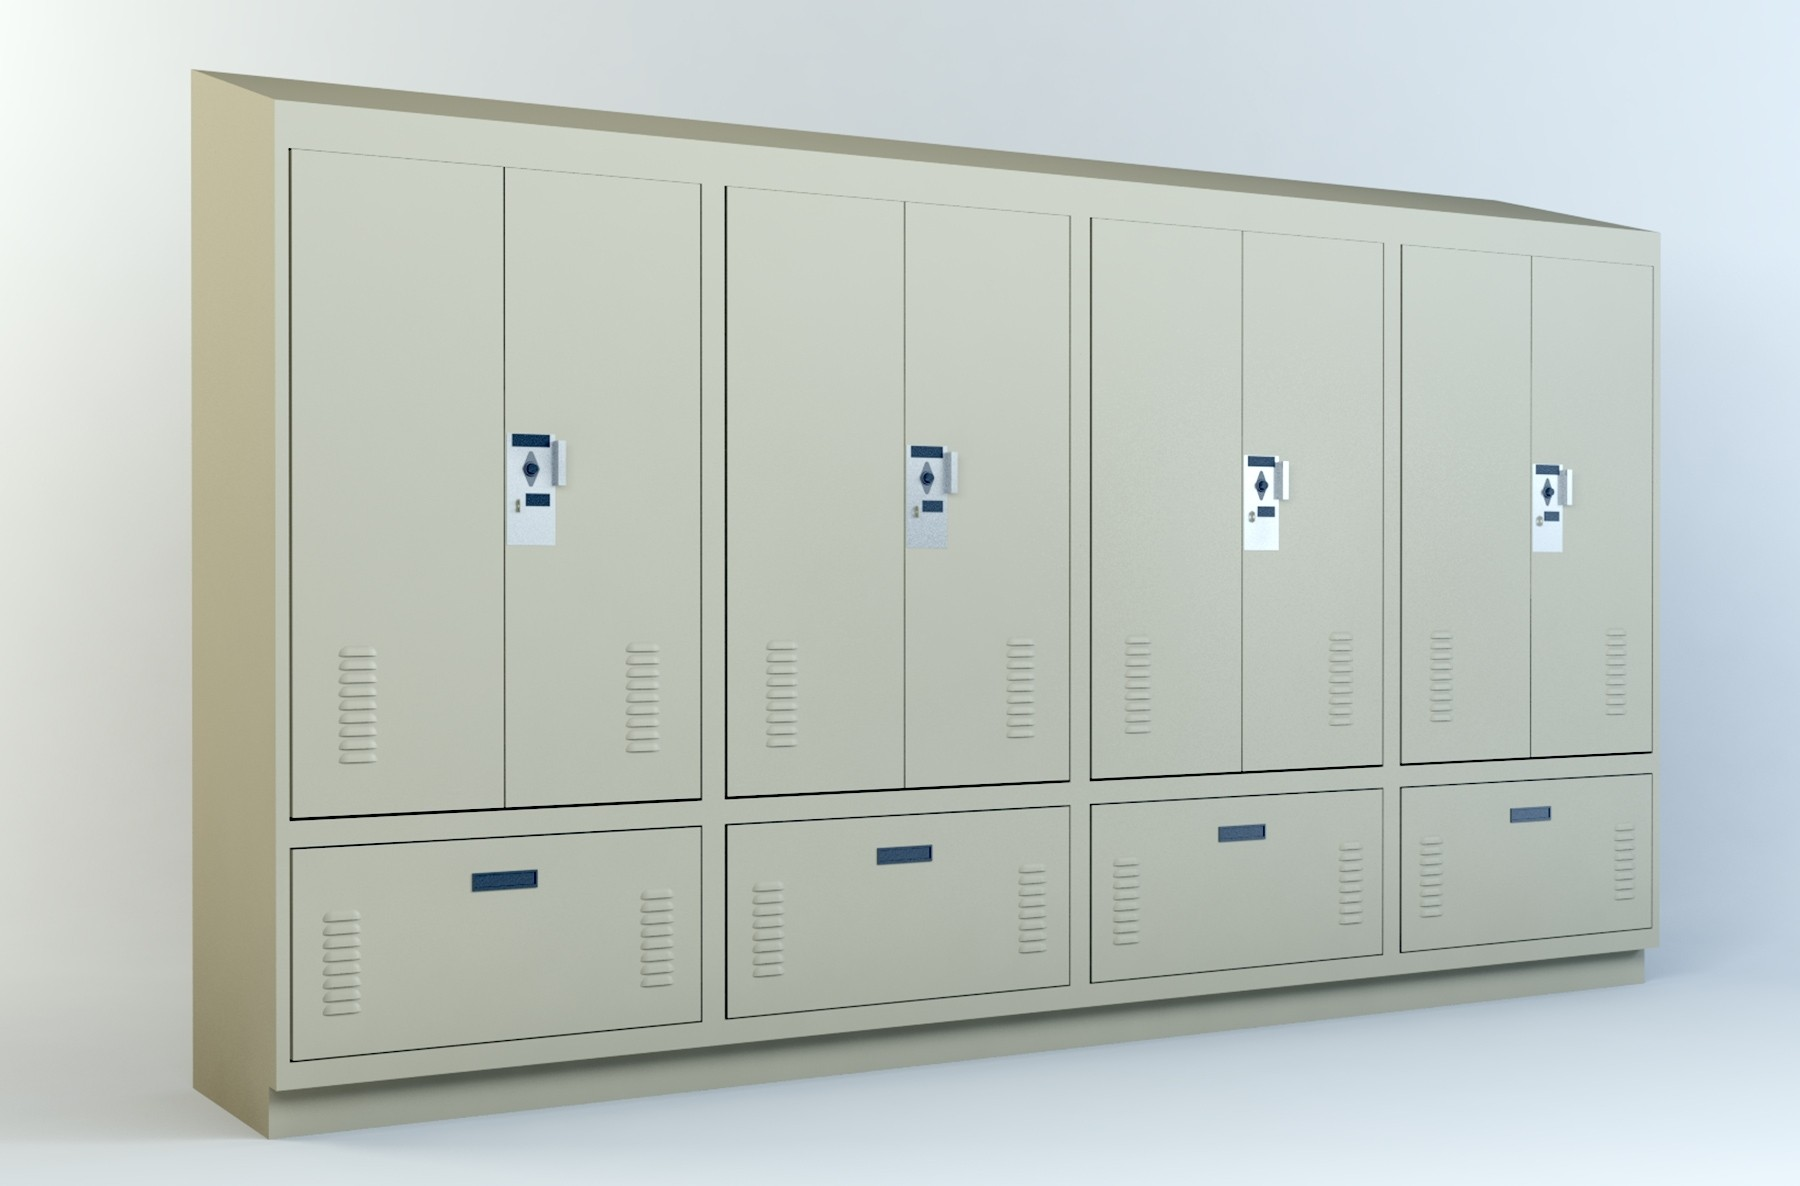 PSL-Door Drawer-Option 3 | Police Gear Locker | Police Officer Locker | Bench Locker | Drawer | Revit | BIM | Model | 10 51 00 | DSM | Spacesaver | Dufferin ... & PSL-Door Drawer-Option 3 | Police Gear Locker | Police Officer ...